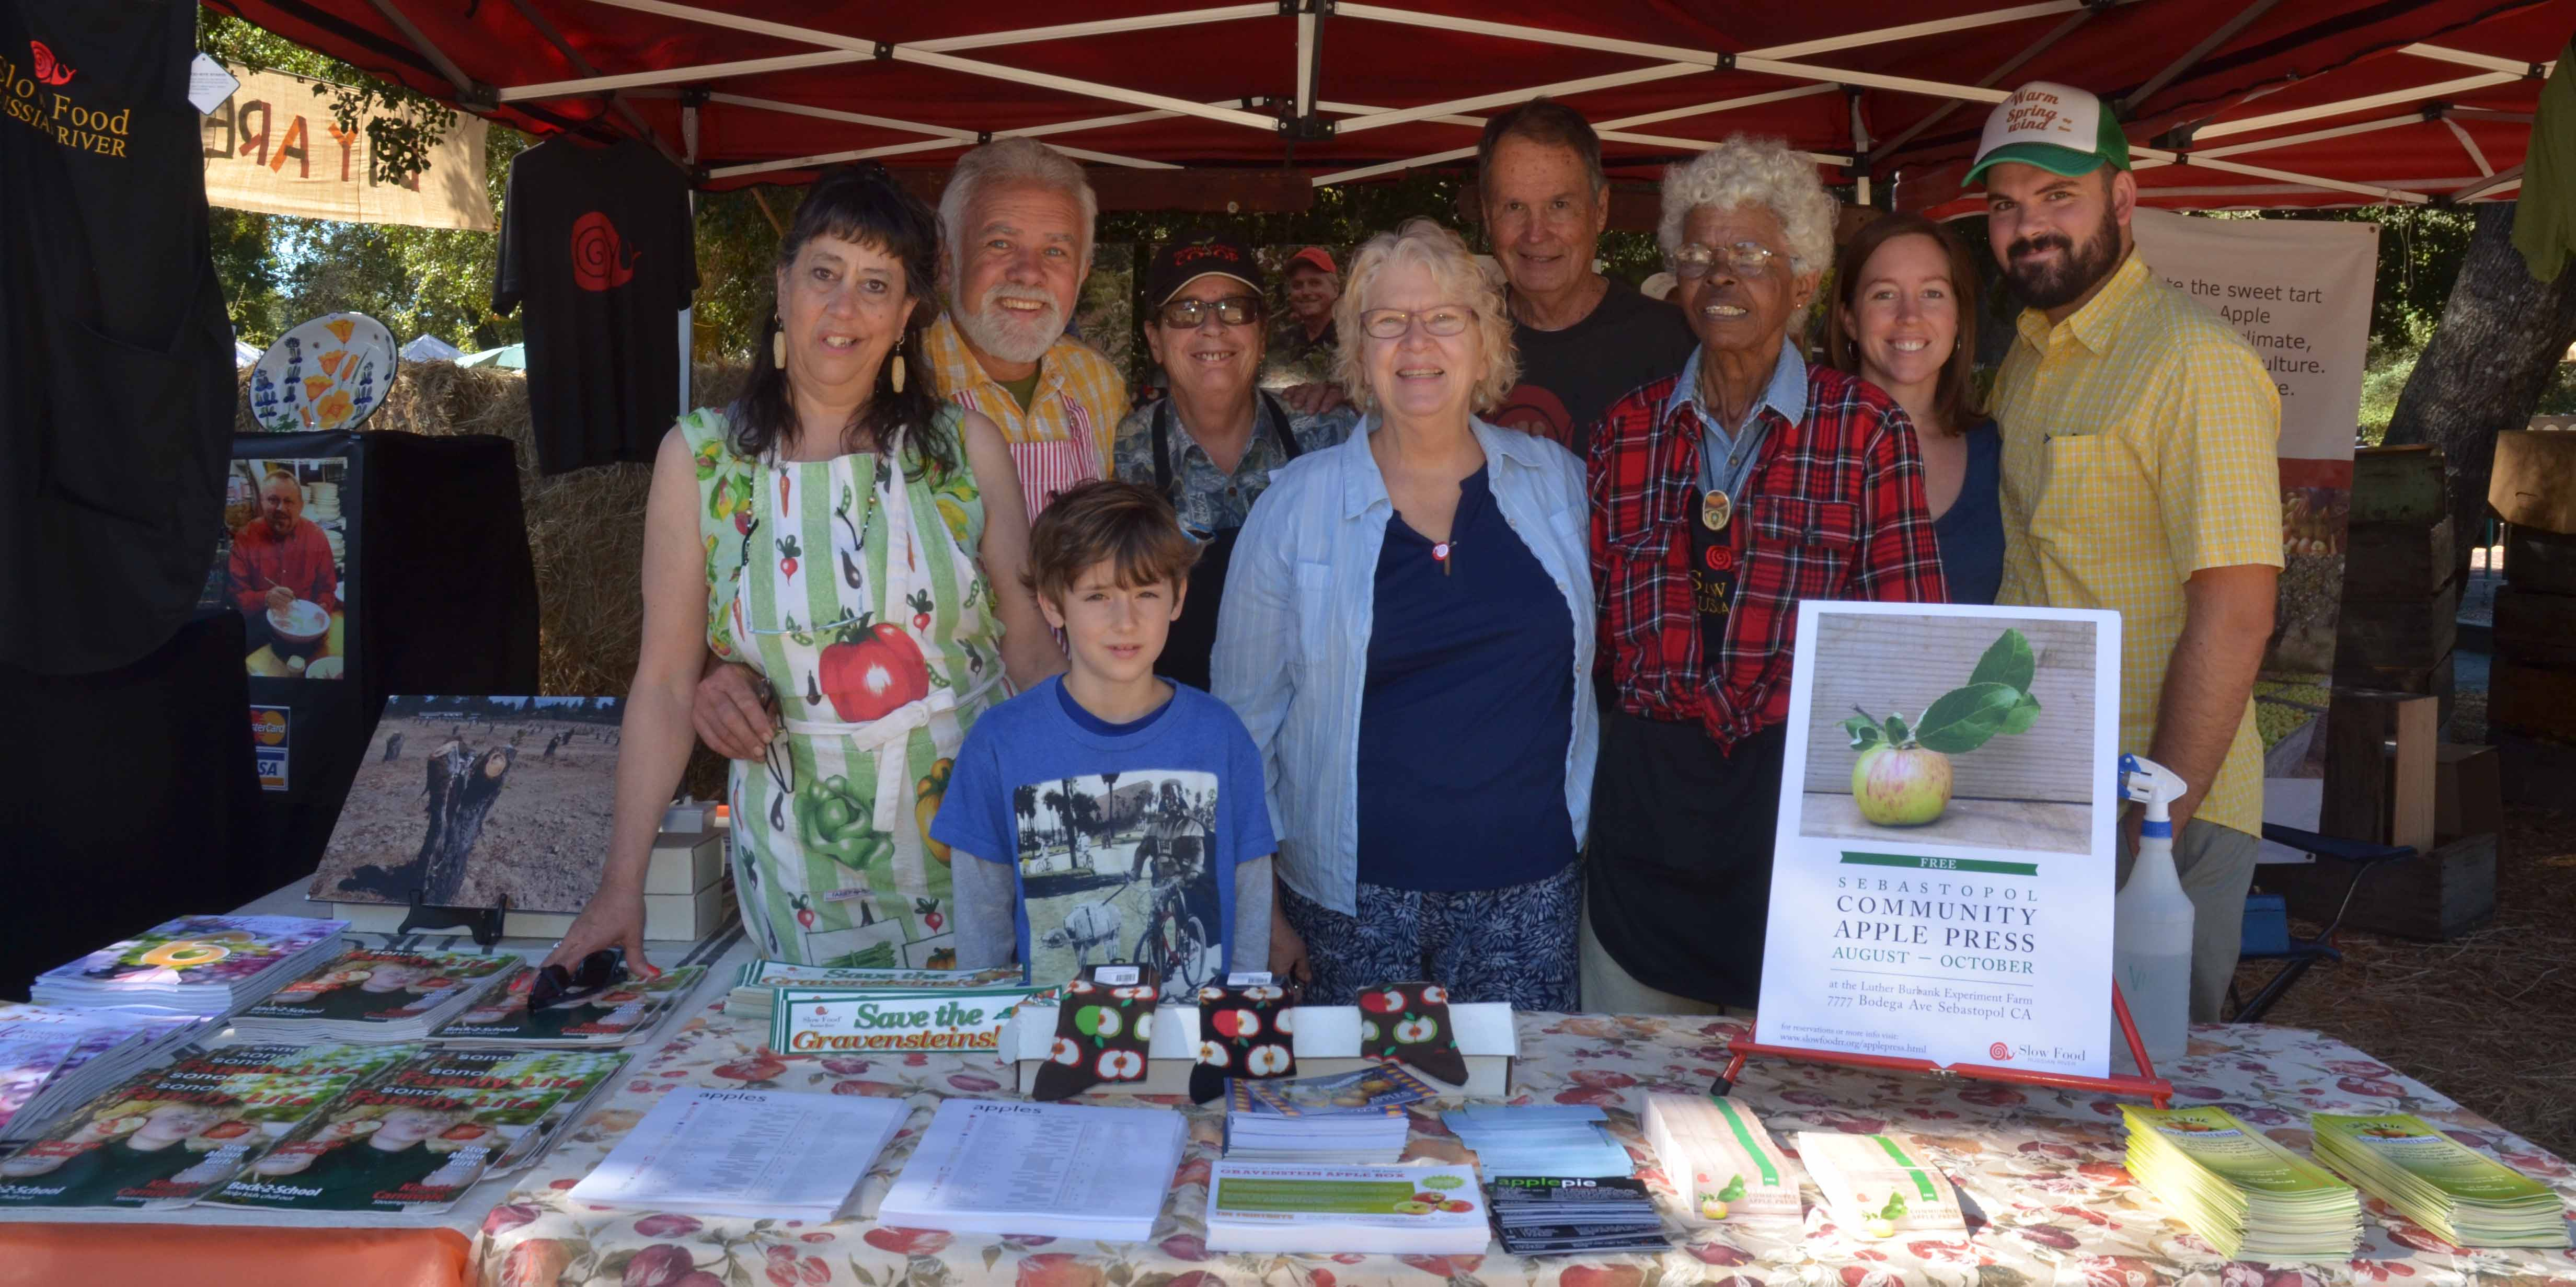 Booth of the Apple Core of Slow Food Russian River at the Gravenstein Apple Fair a great success